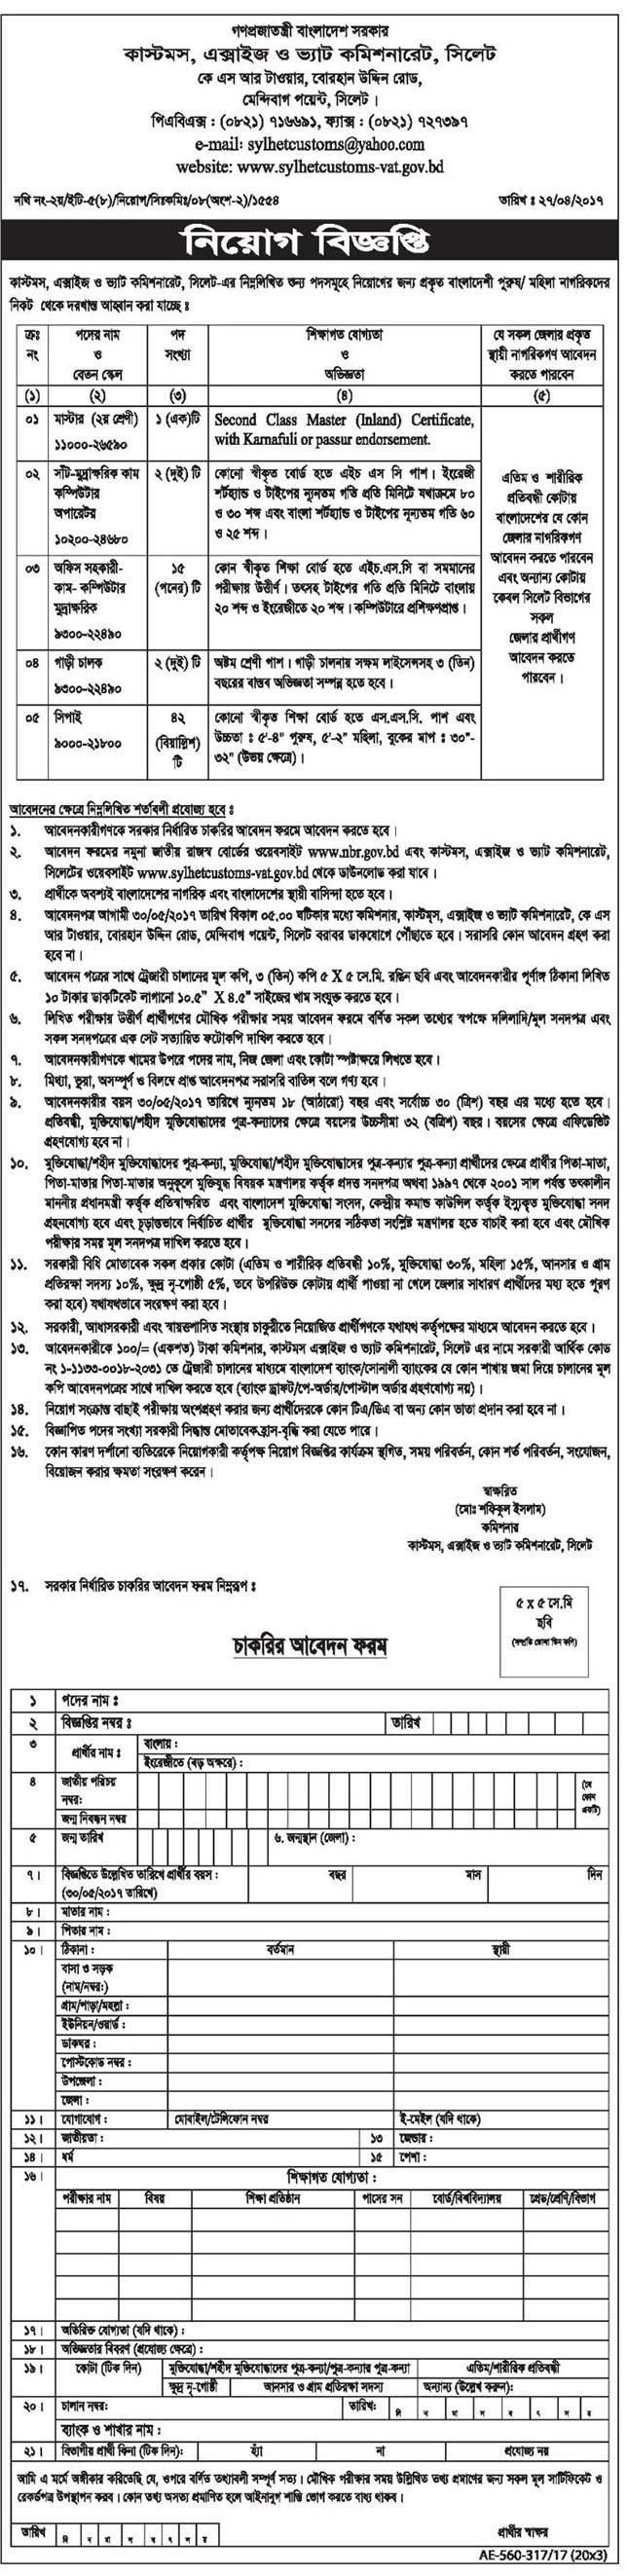 Bangladesh Customs, Excise and VAT Commissionerate Job Circular 2017